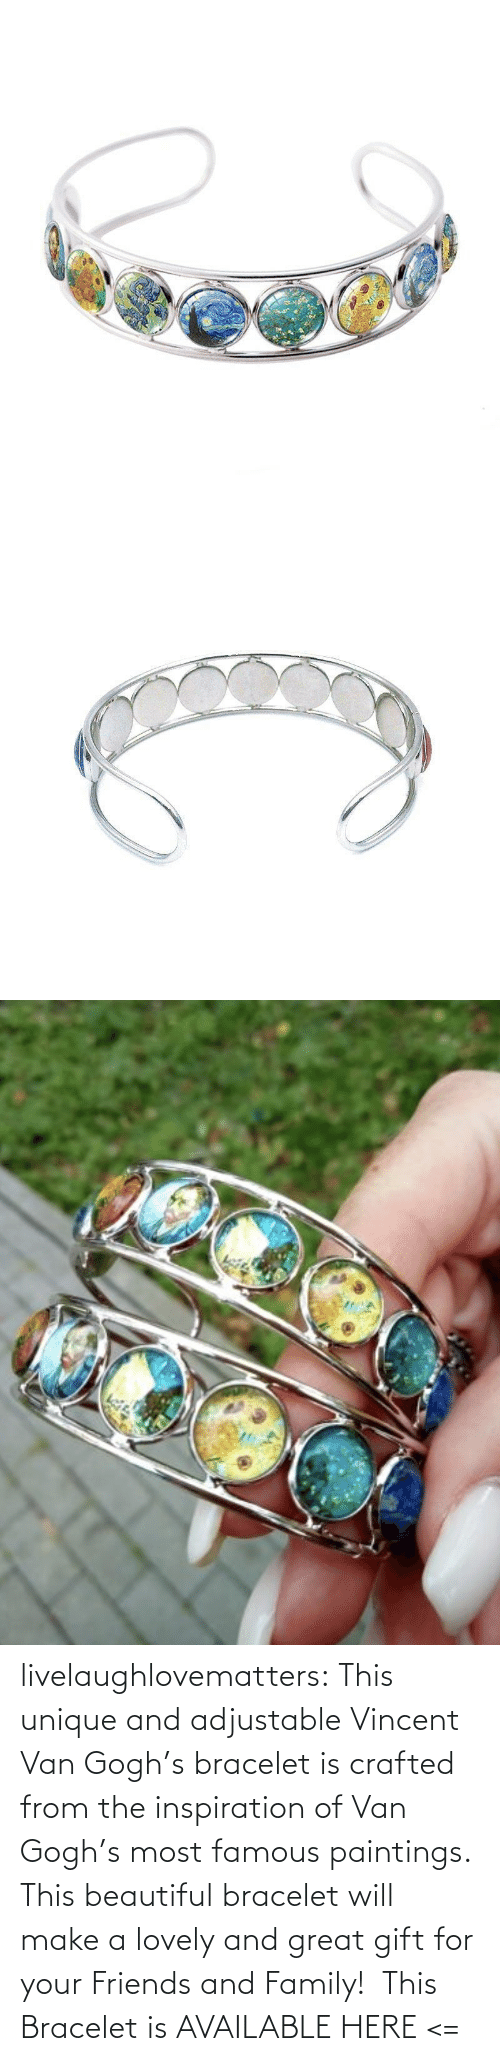 Paintings: livelaughlovematters: This unique and adjustable Vincent Van Gogh's bracelet is crafted from the inspiration of Van Gogh's most famous paintings. This beautiful bracelet will make a lovely and great gift for your Friends and Family!  This Bracelet is AVAILABLE HERE <=